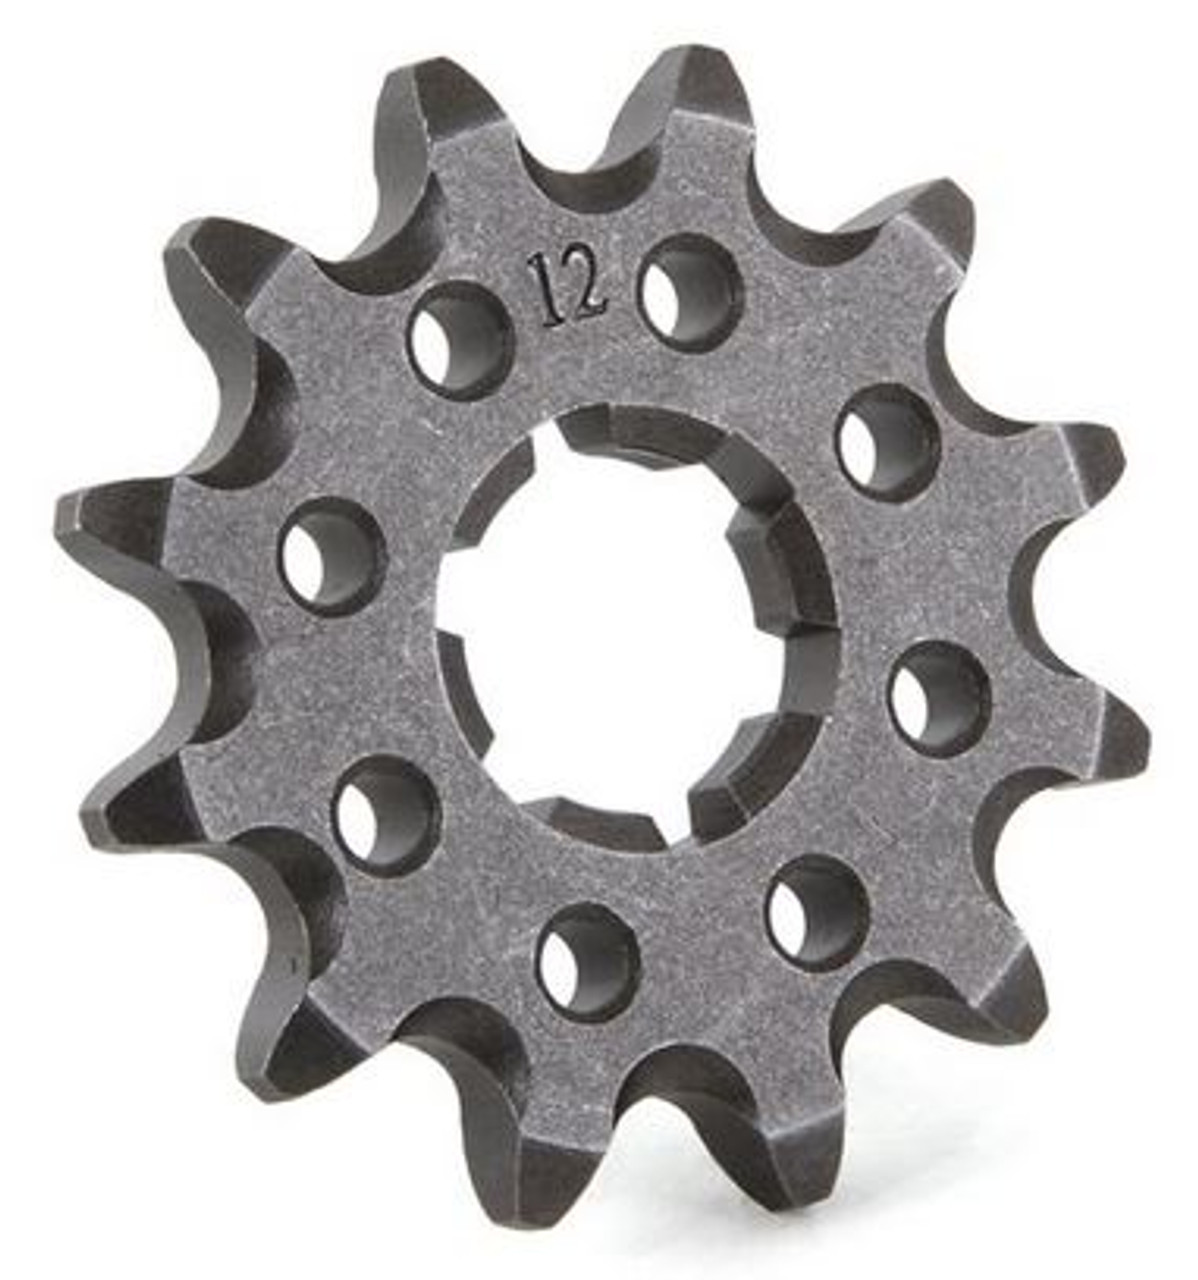 KTM 250 SX-F 2006-2019 FRONT SPROCKET 13 14 15 TOOTH STEEL PROX